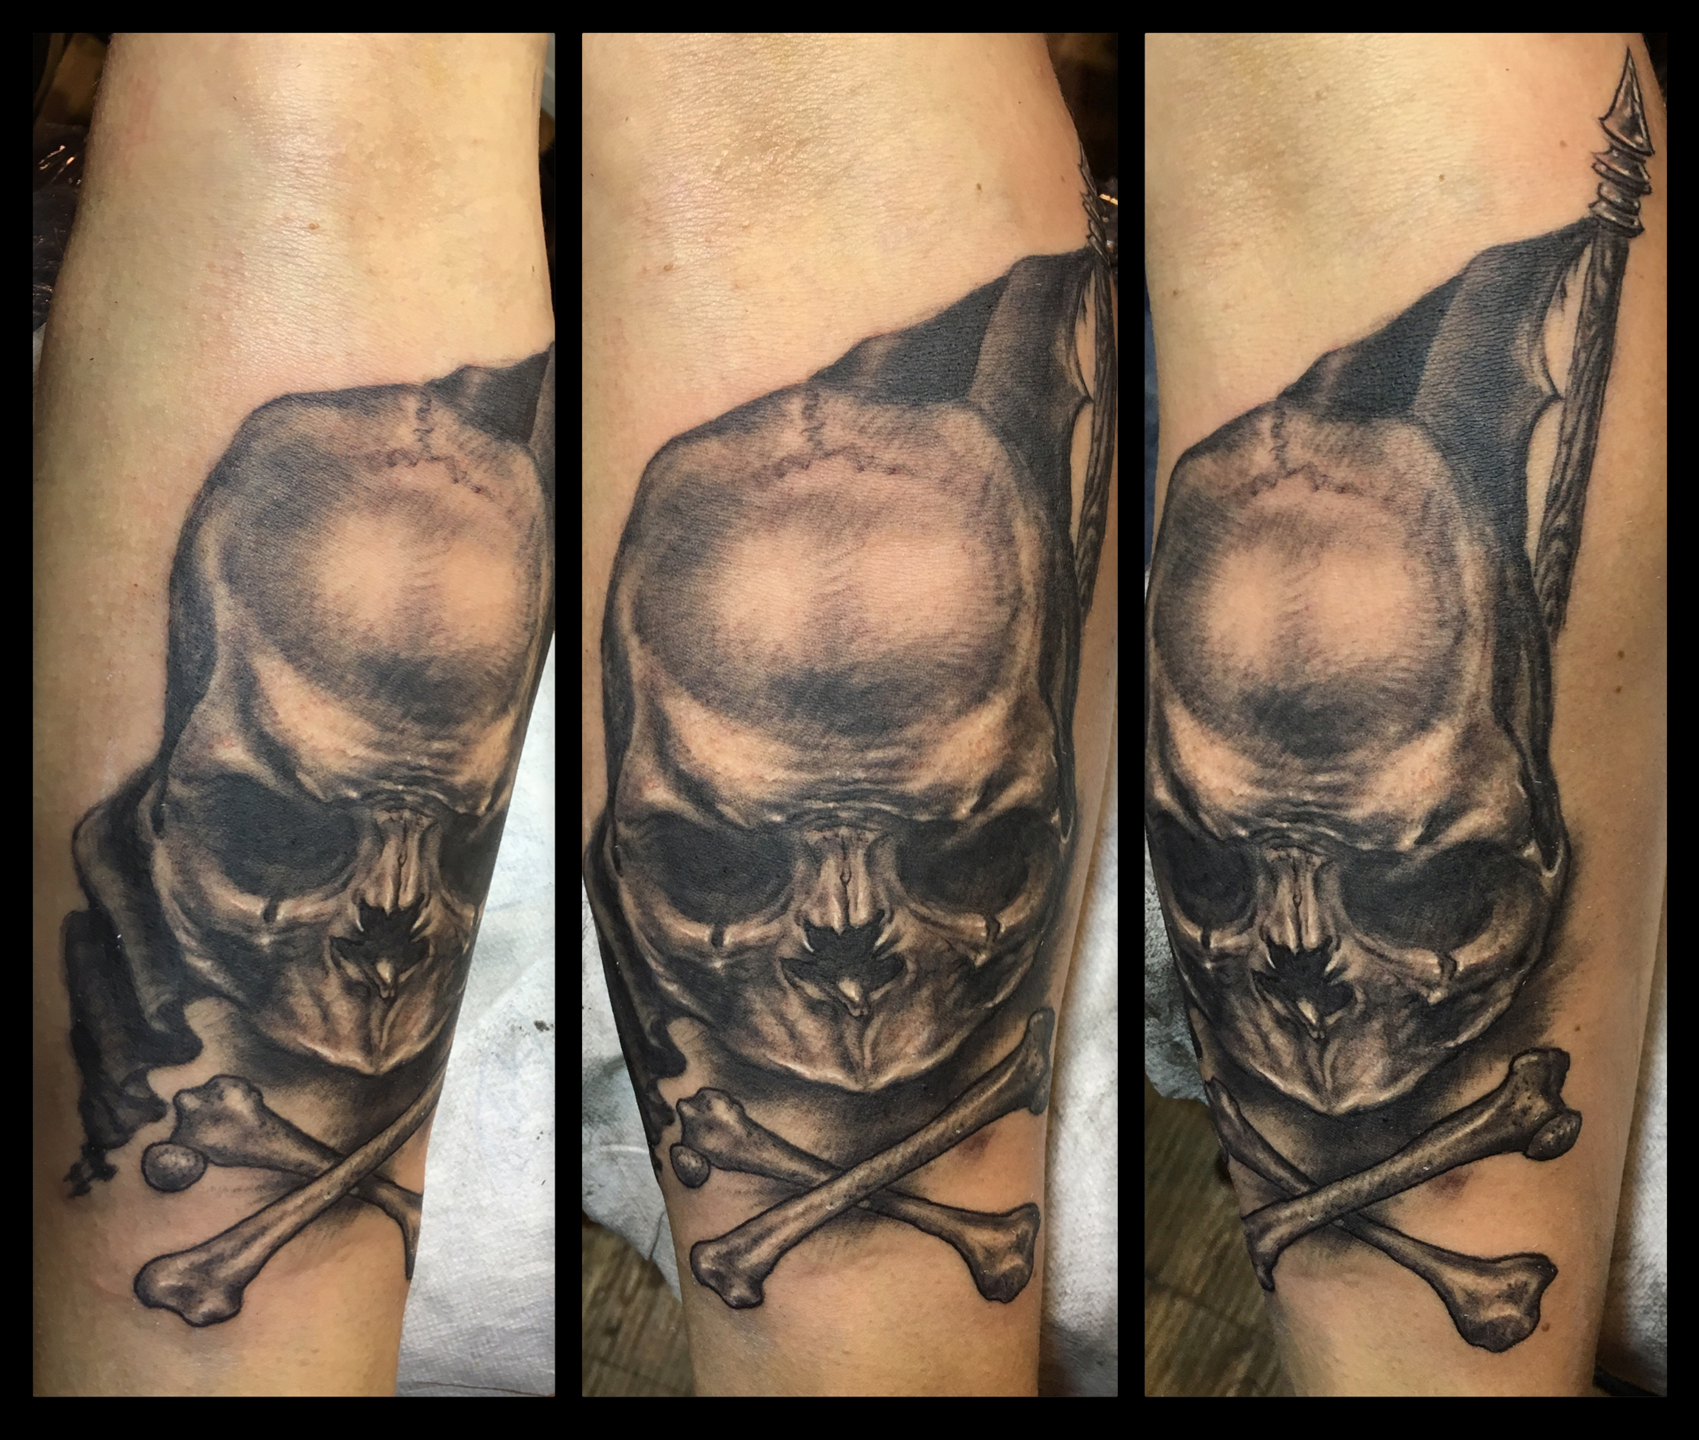 Black and Grey Freehand Jolly Roger Pirate Flag Skull Tattoo, (fresh) Le Mondial du Tatouage Convention, Paris, France